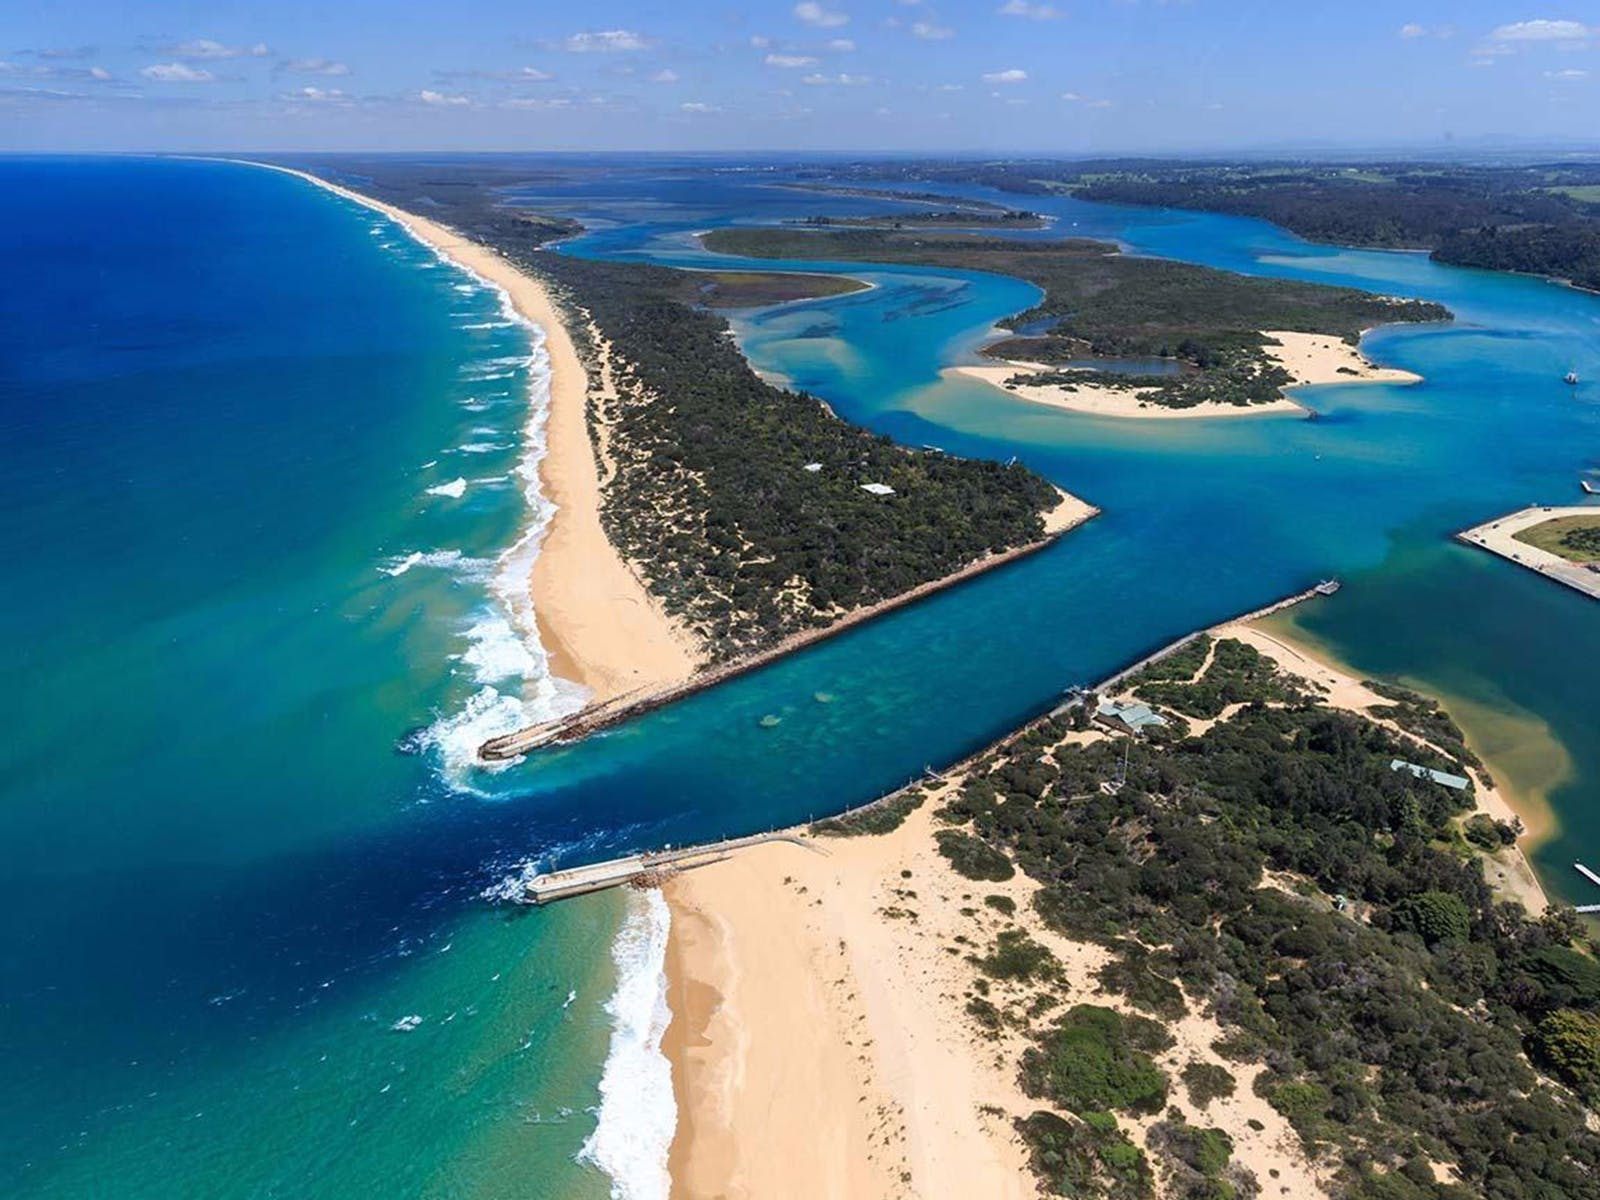 Lakes Entrance Aerial View